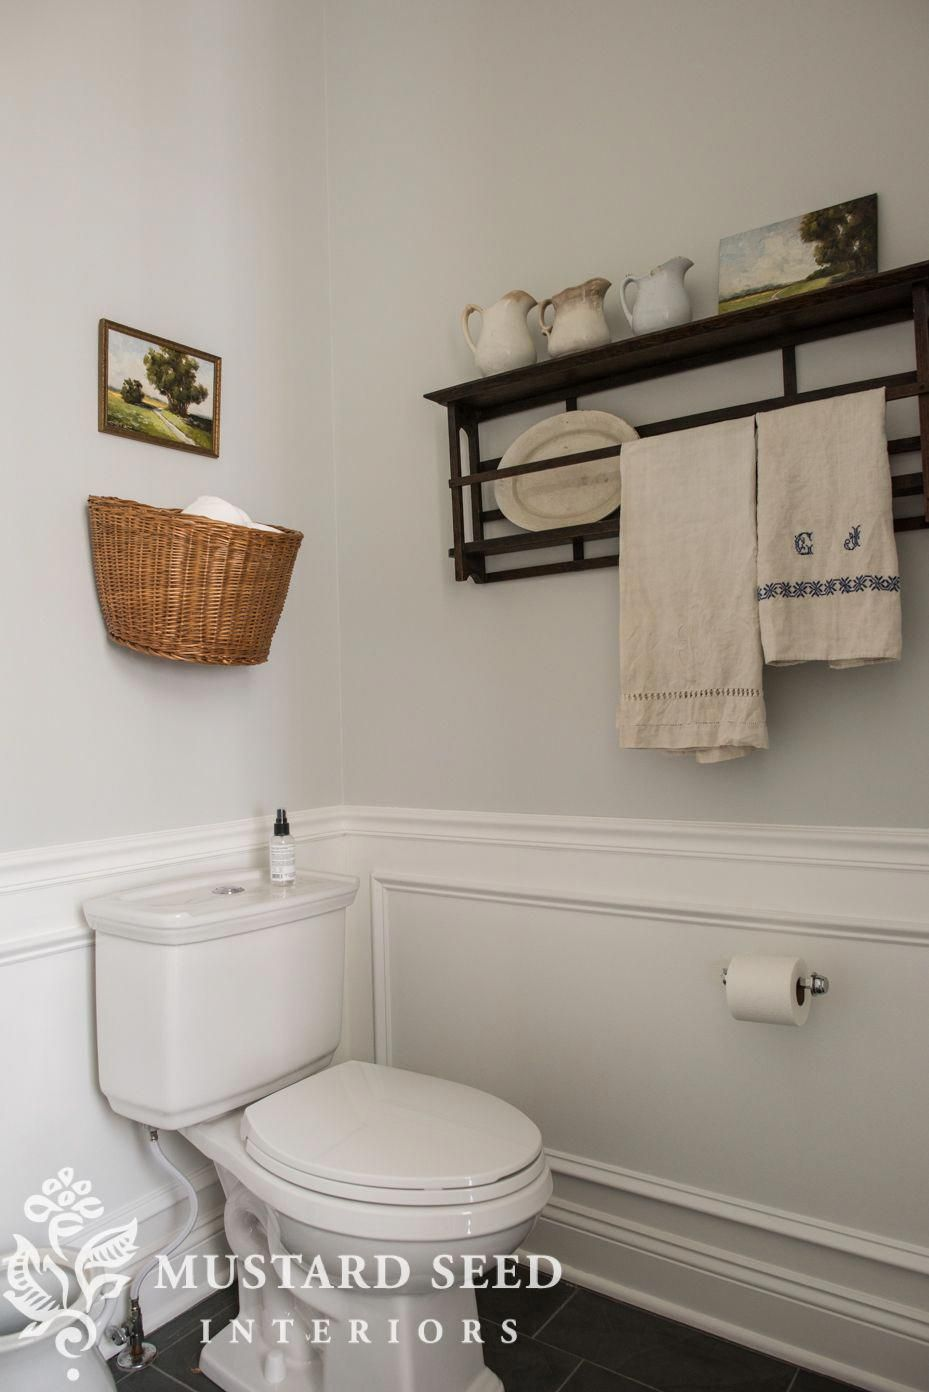 Installing Picture Frame Molding In The Guest Bathroom Helps Break Up The Wall Space And Add Architectural Diy Bathroom Decor Picture Frame Molding Chair Rail